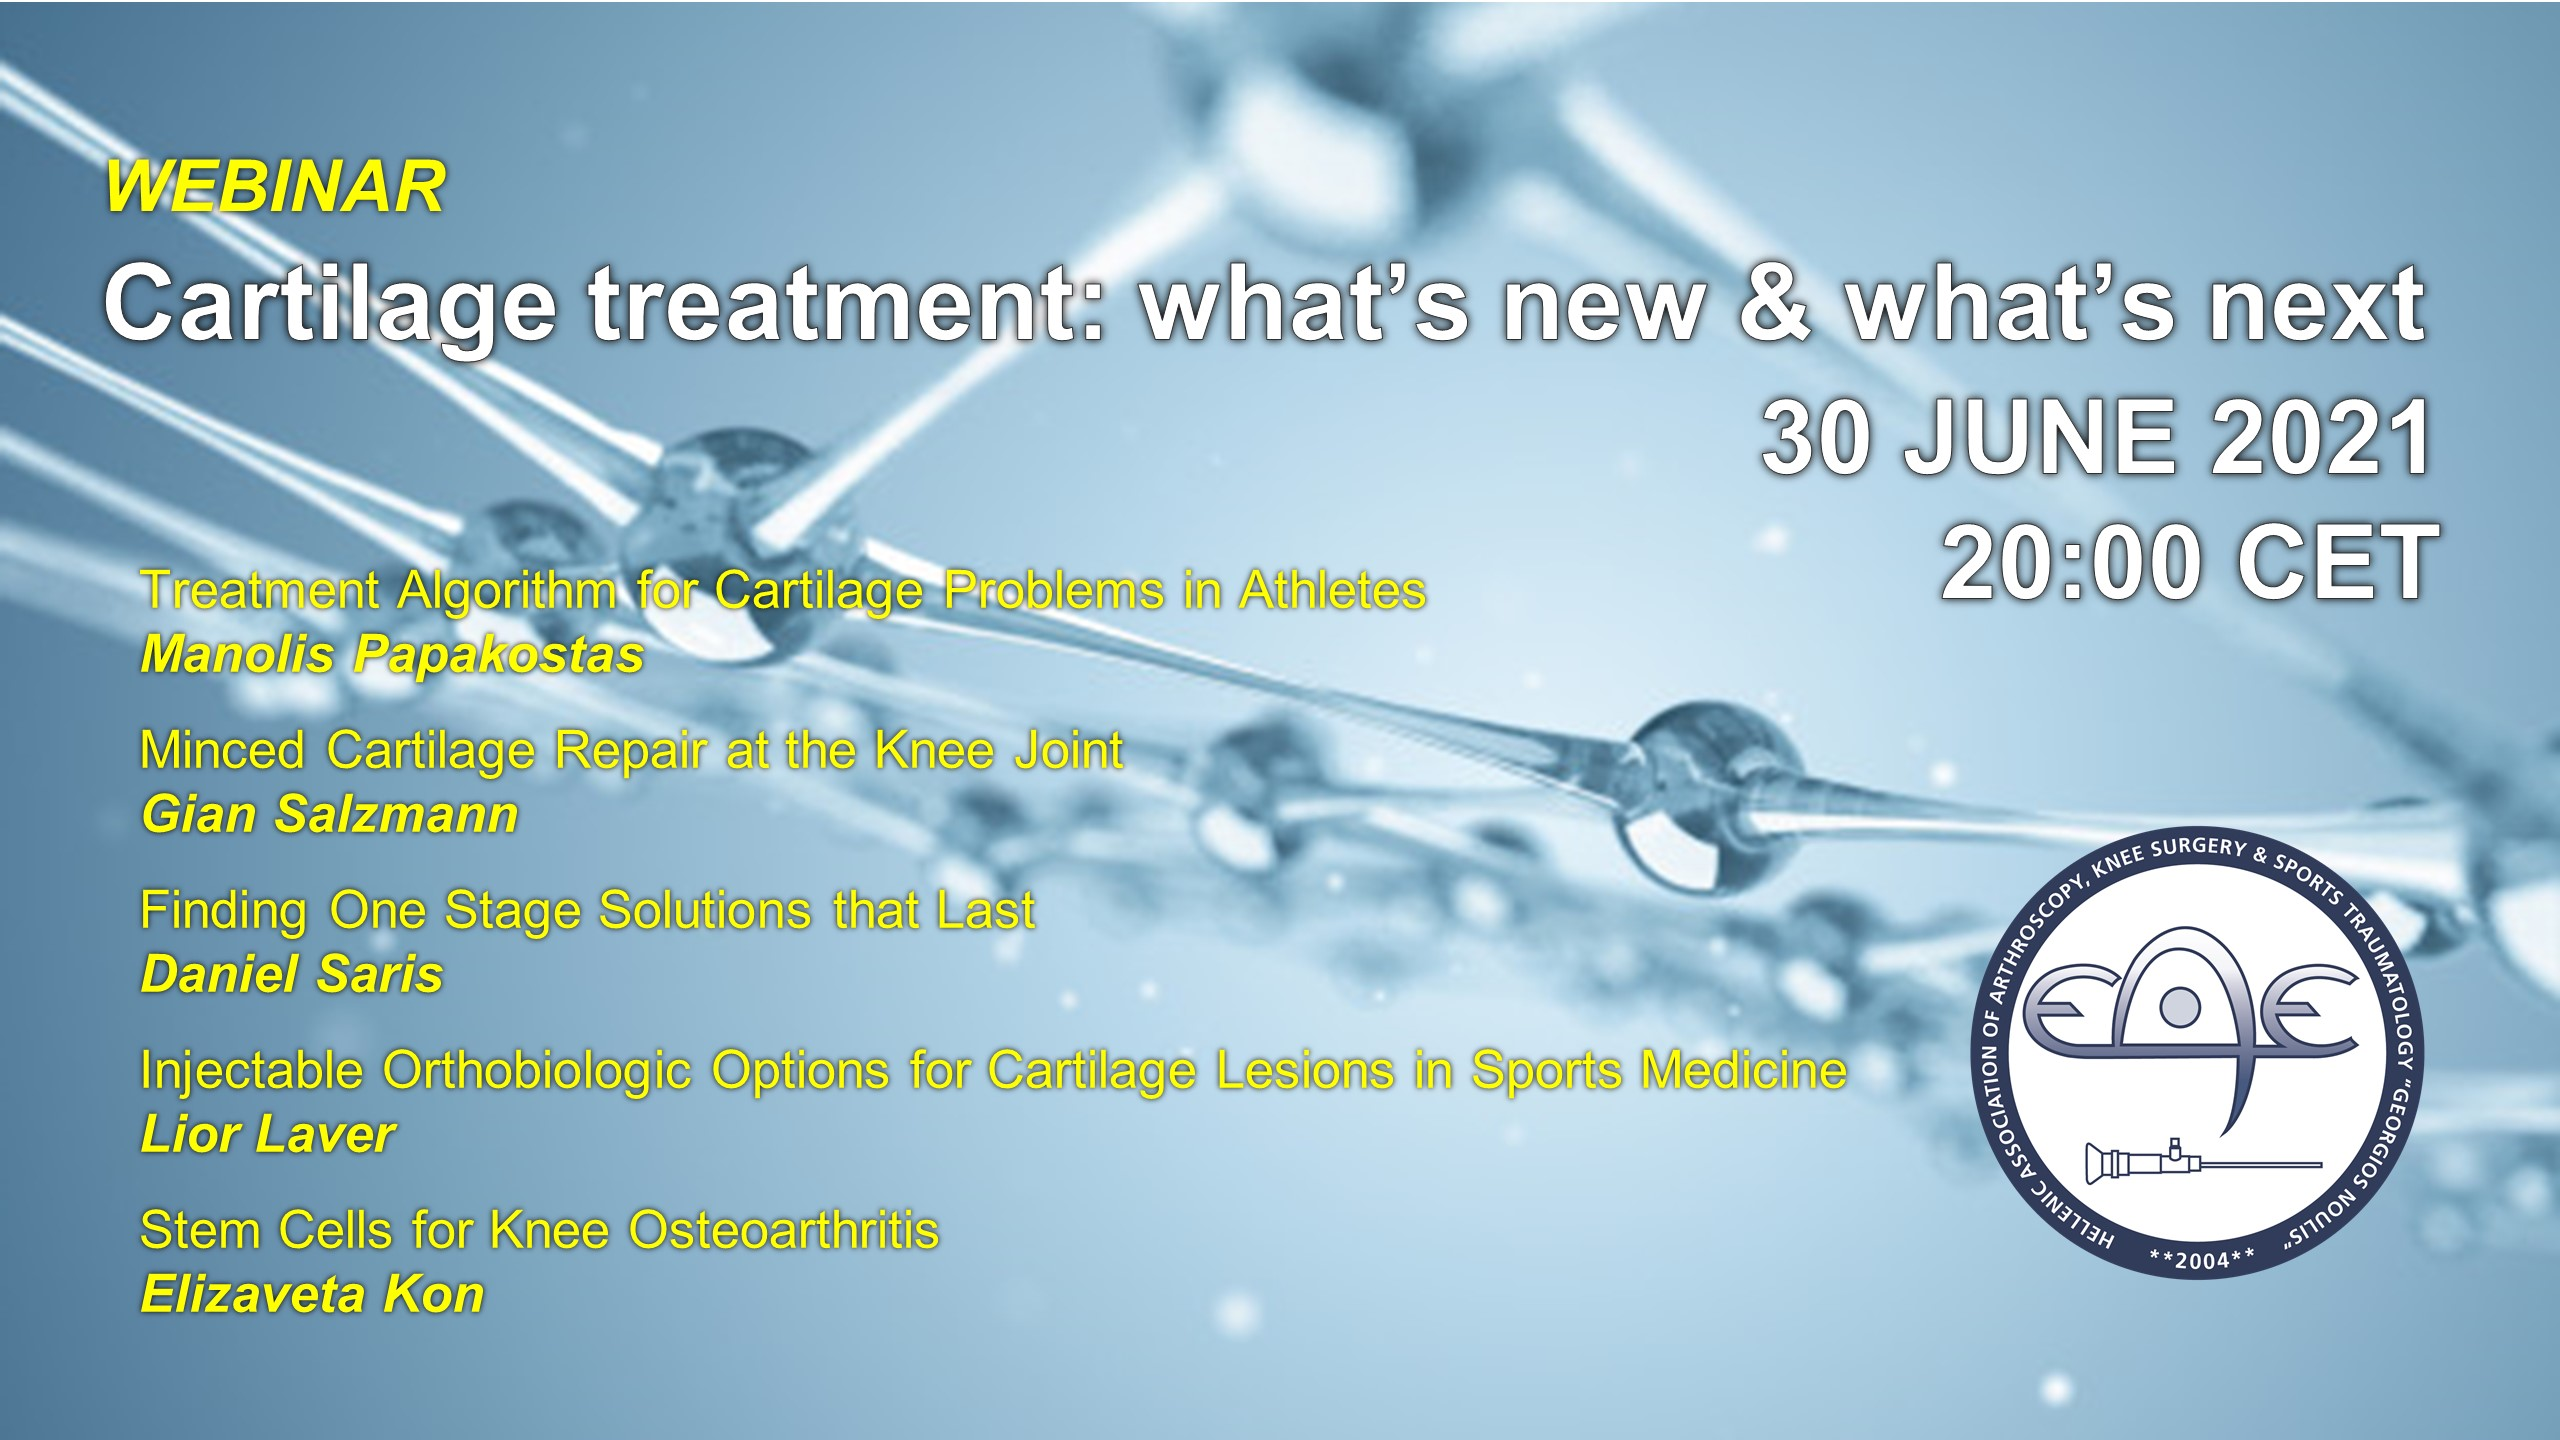 Cartilage treatment: what's new and what's next